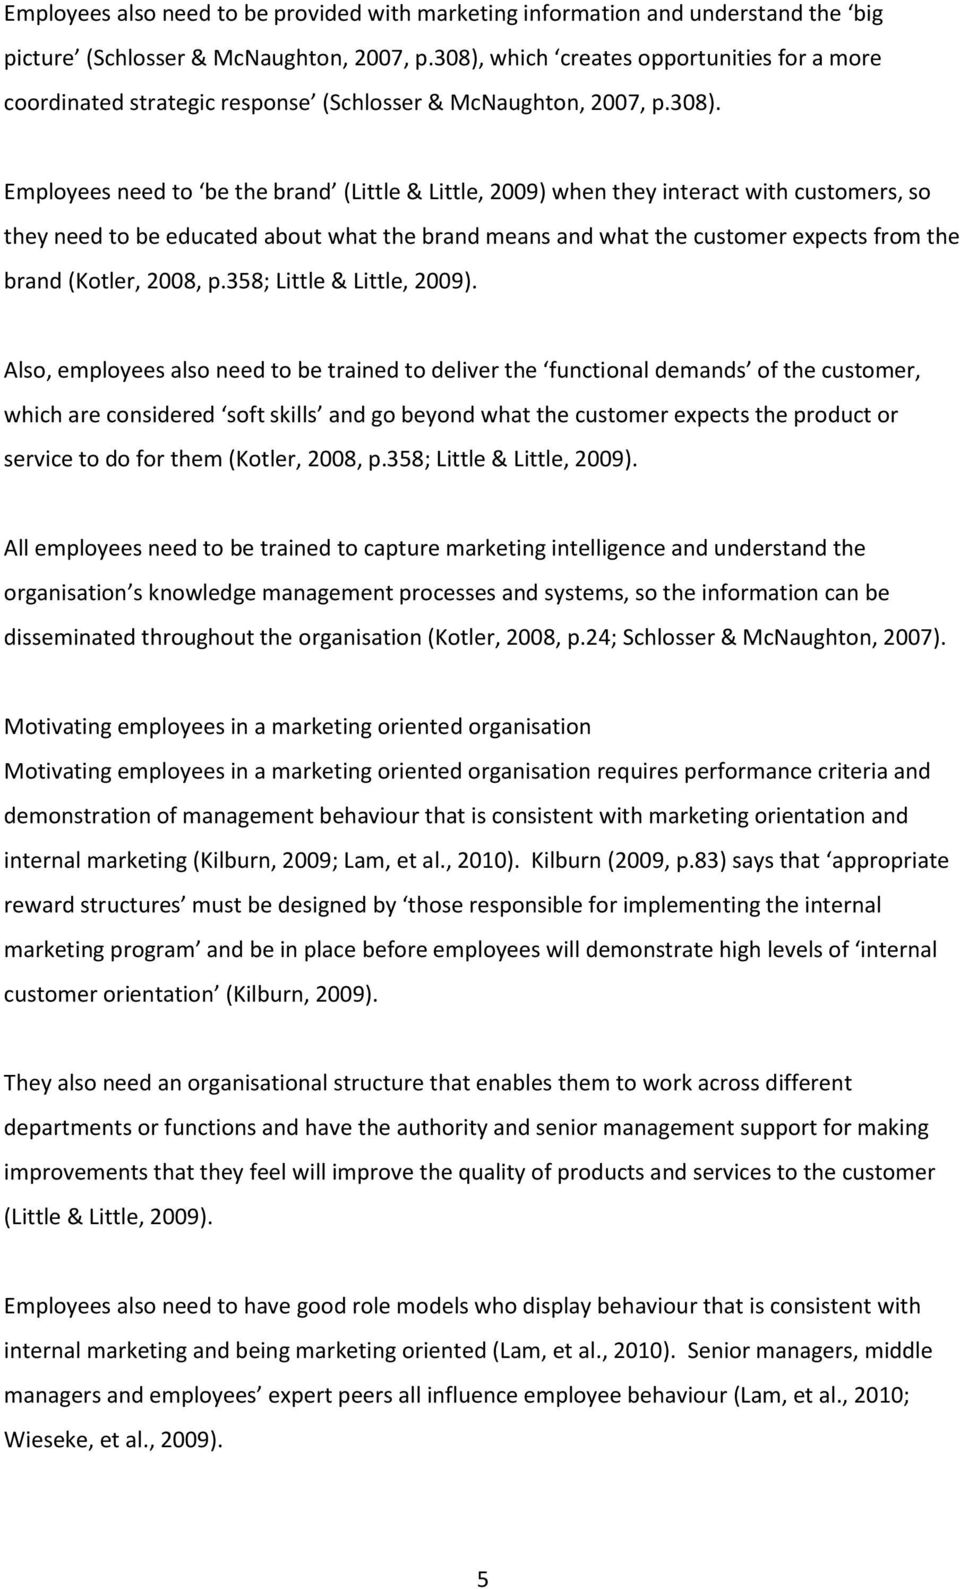 customers, so they need to be educated about what the brand means and what the customer expects from the brand (Kotler, 2008, p.358; Little & Little, 2009).